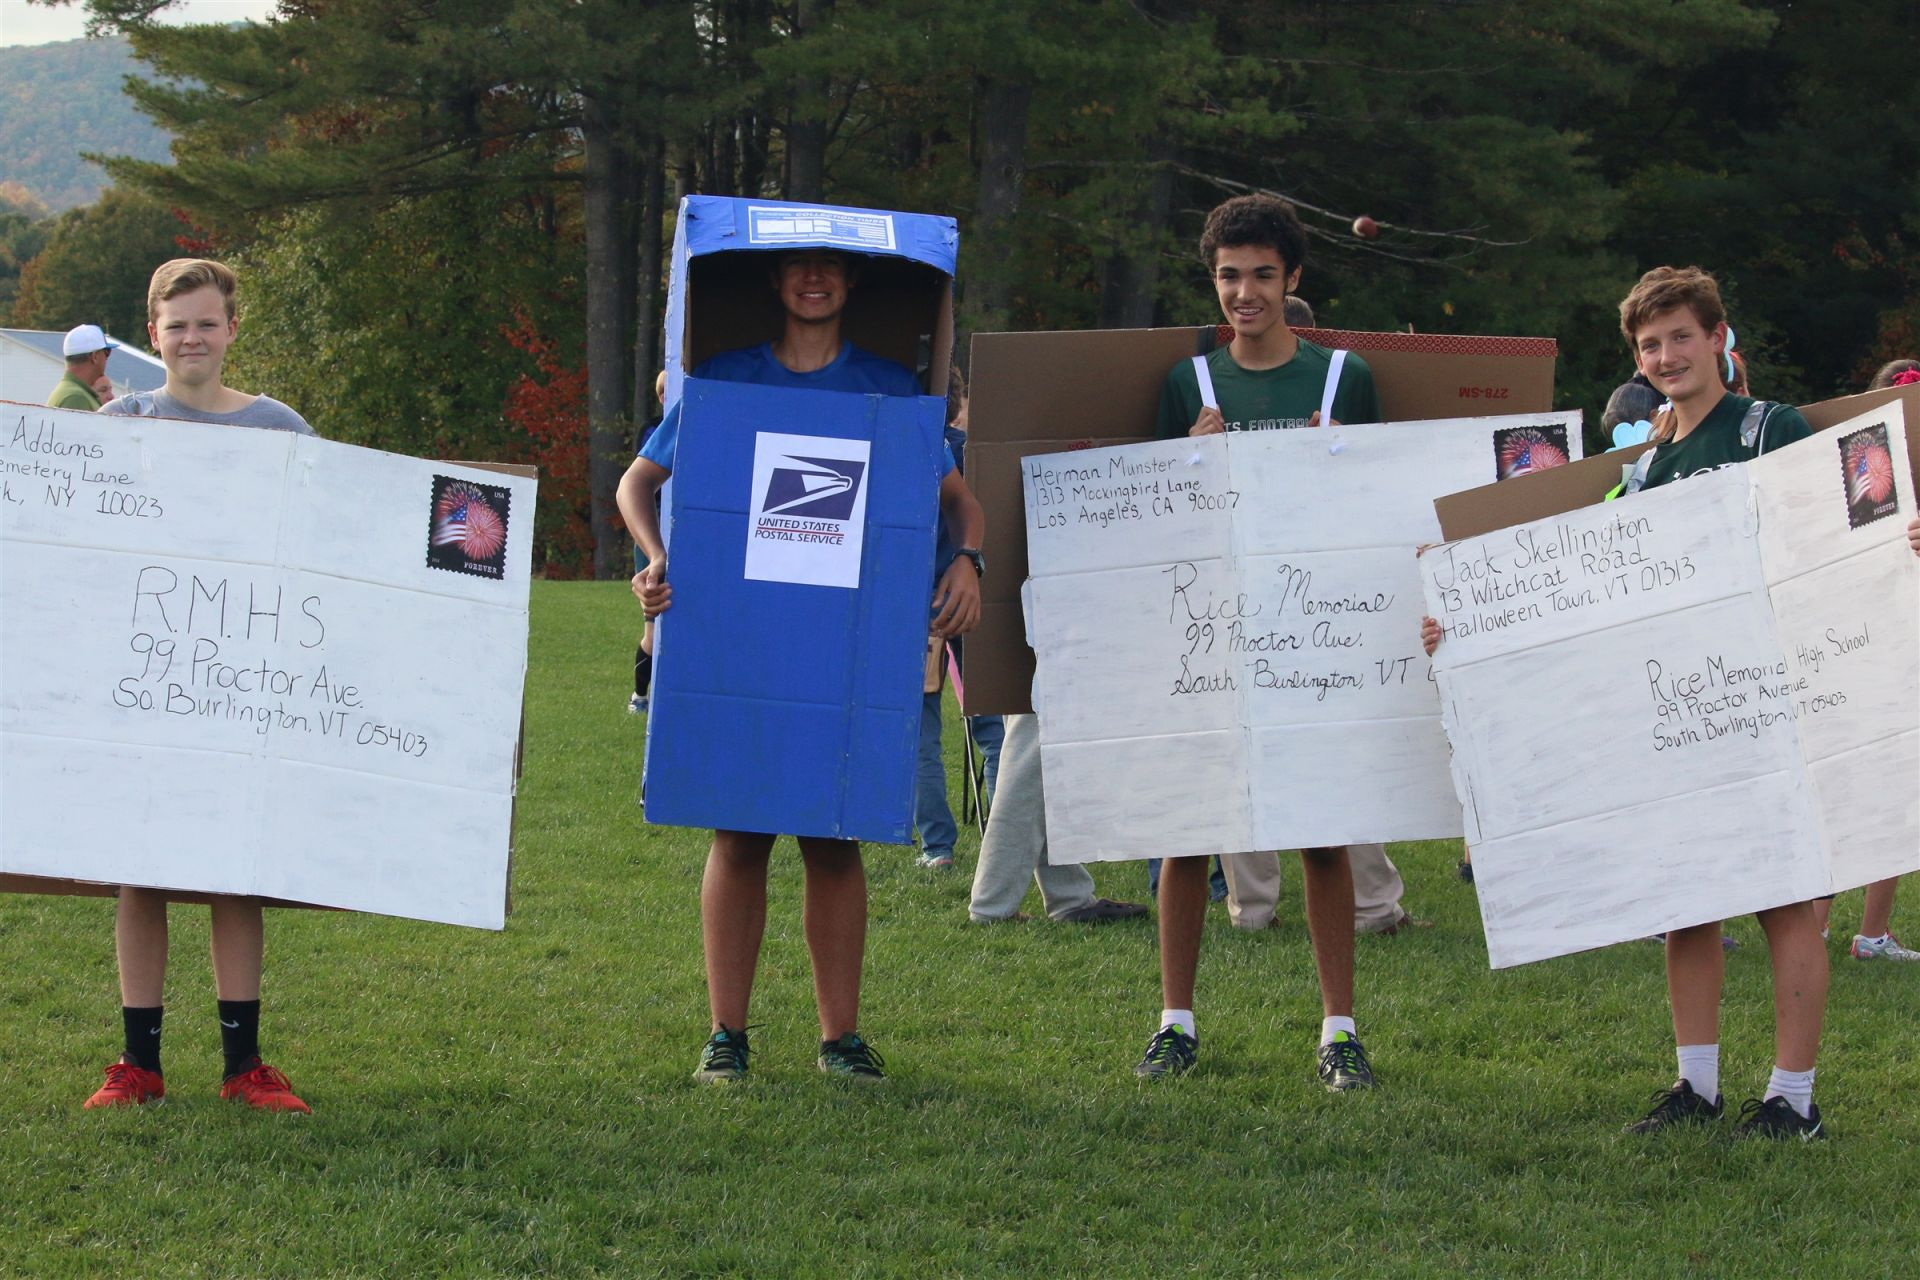 Rice students captured a top prize at the annual Costume Run at BFA Fairfax on Tuesday.